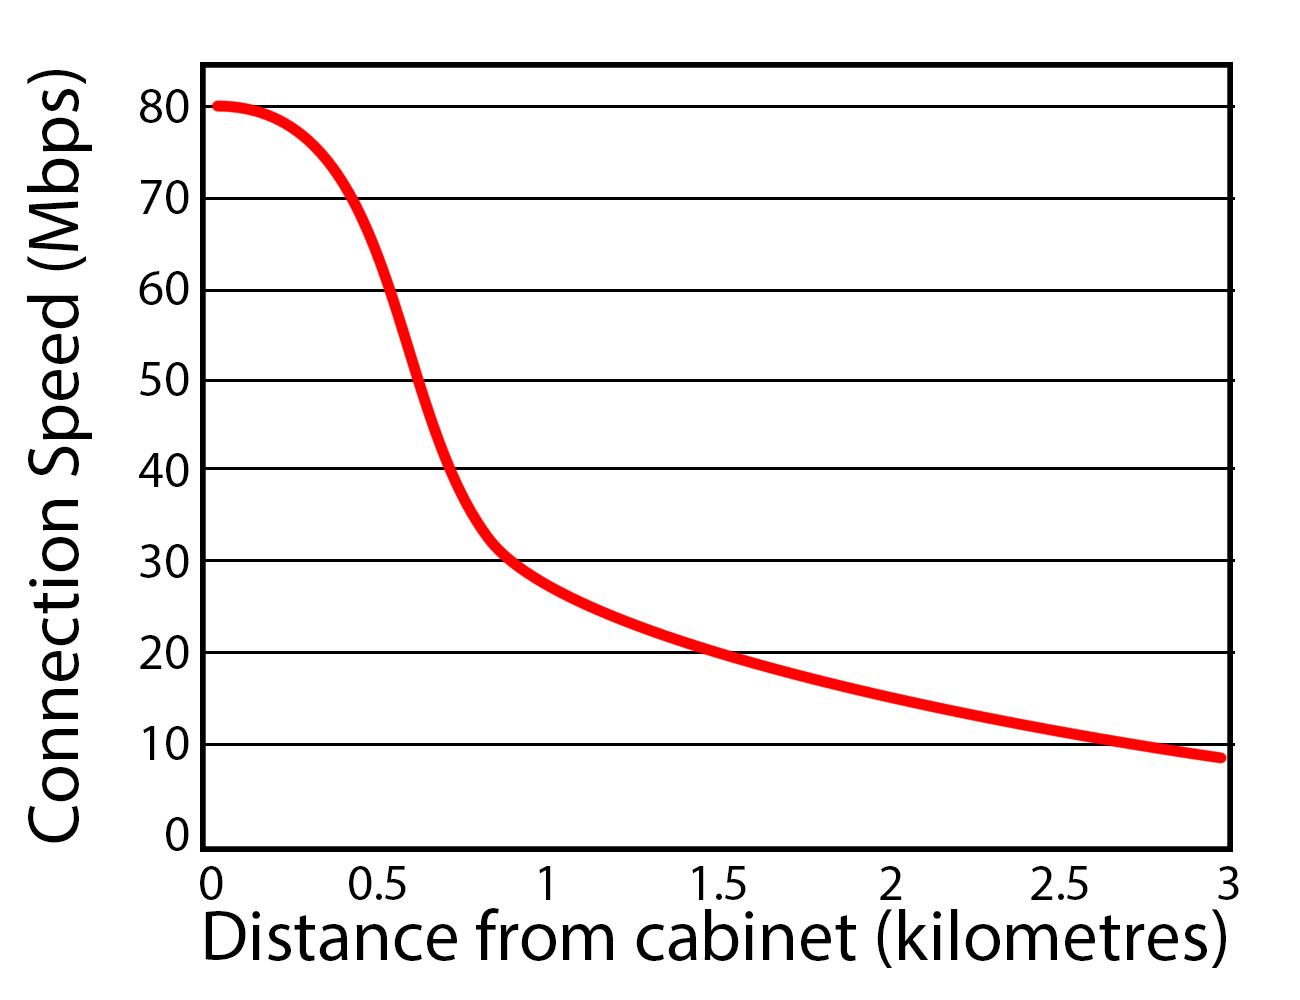 FTTC Broadband speed vs distance from cabinet graph